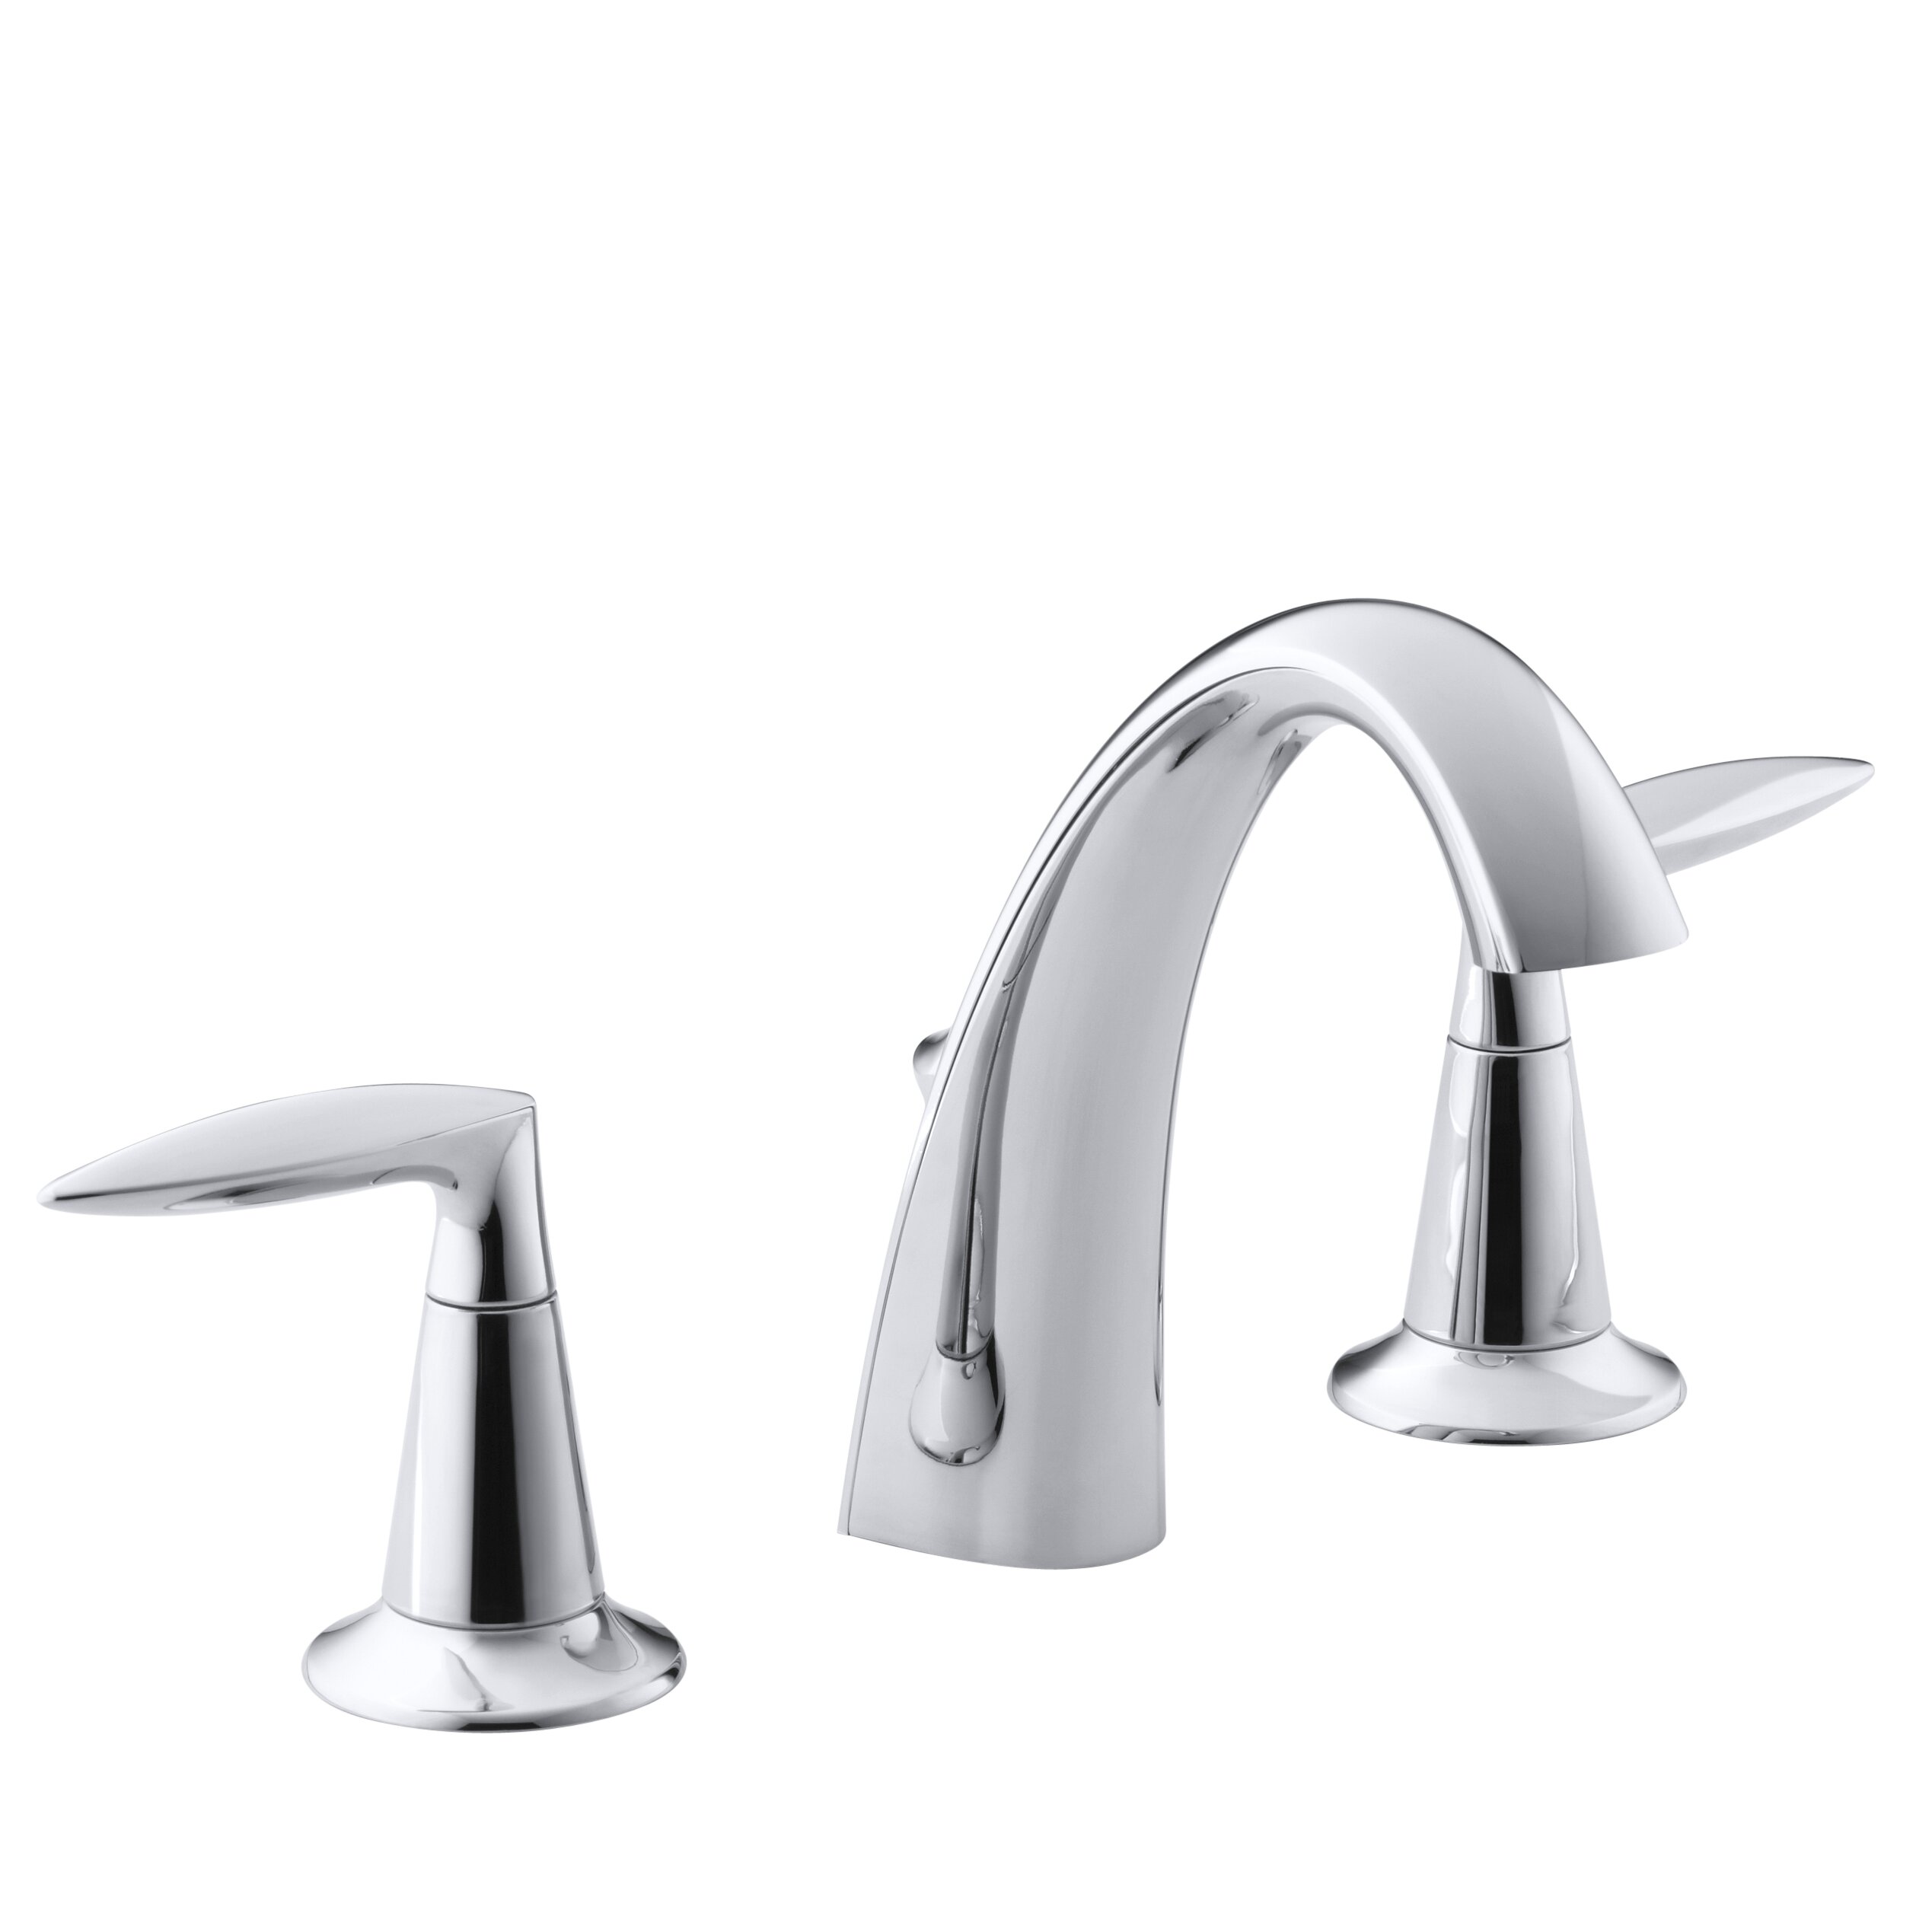 Kohler Alteo Widespread Bathroom Sink Faucet & Reviews Wayfair